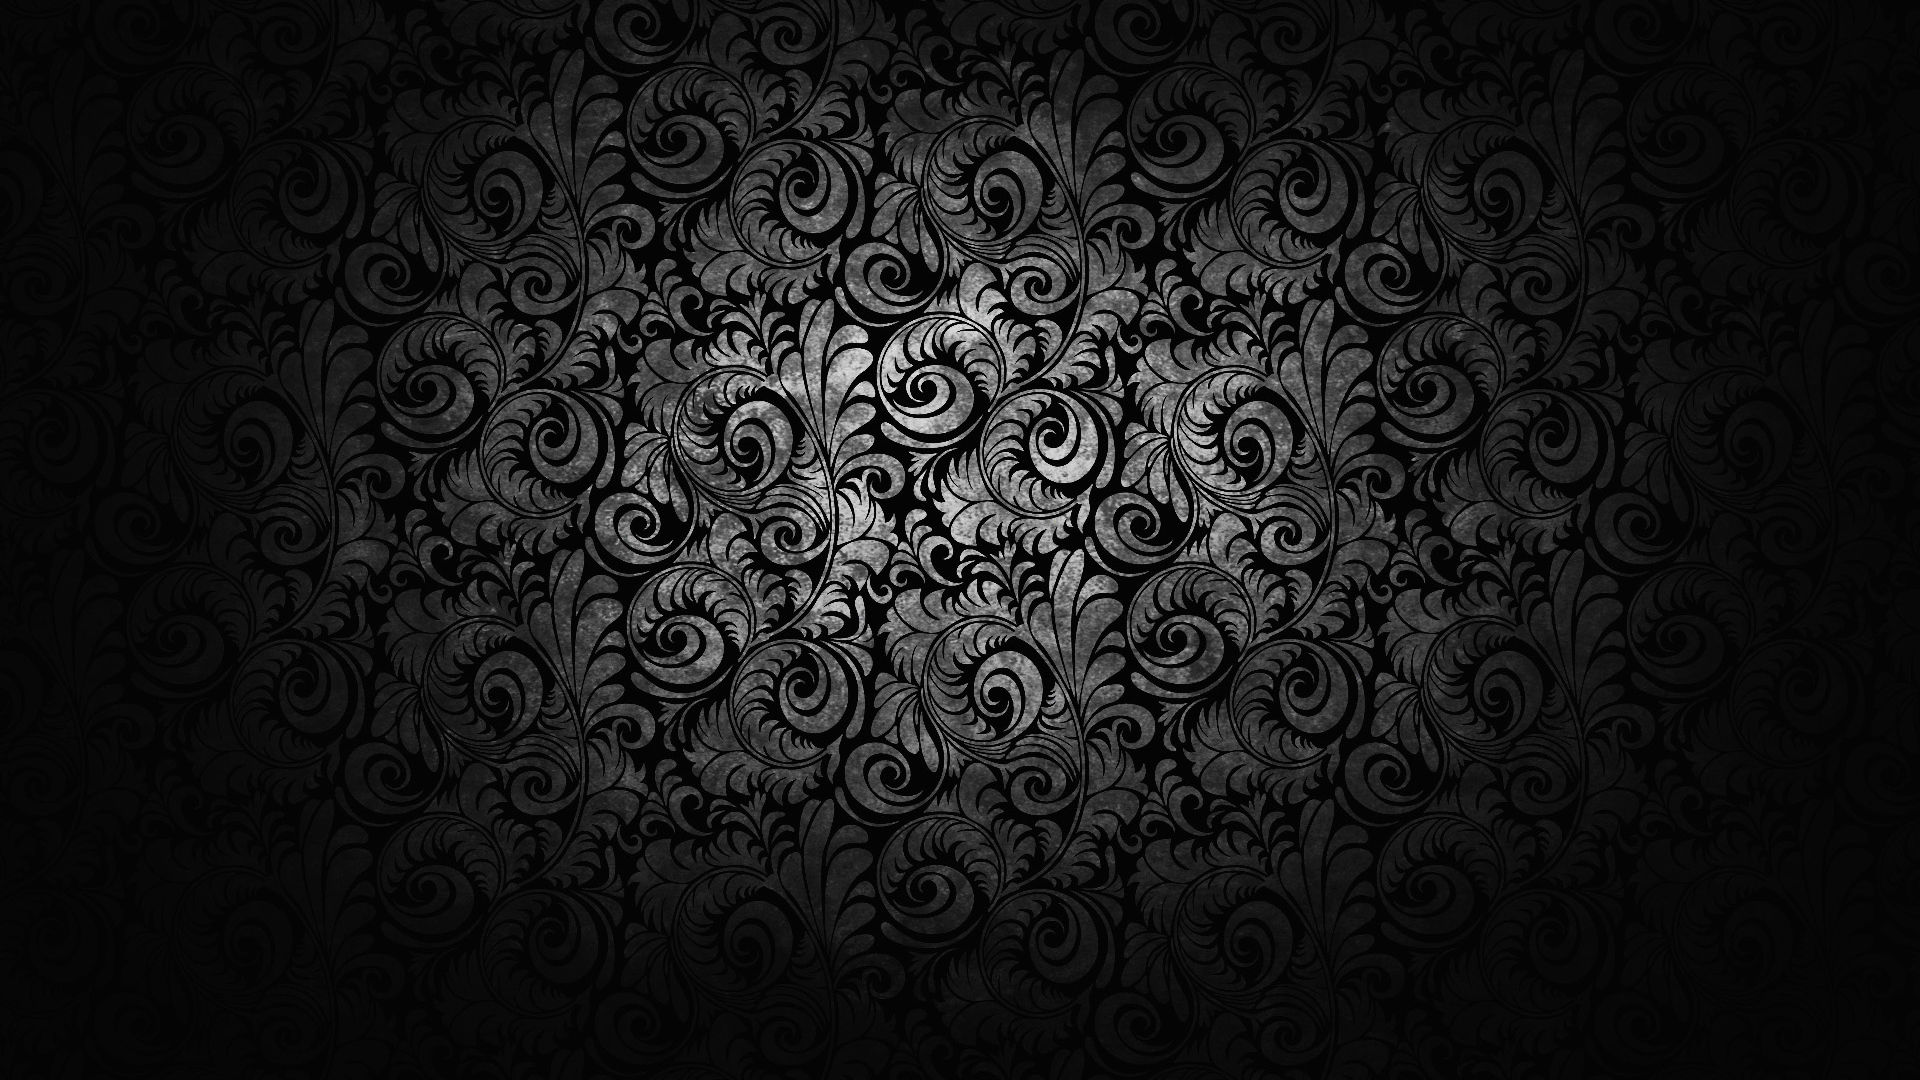 Free Download Black And White Floral Wallpapers And Photos Hd